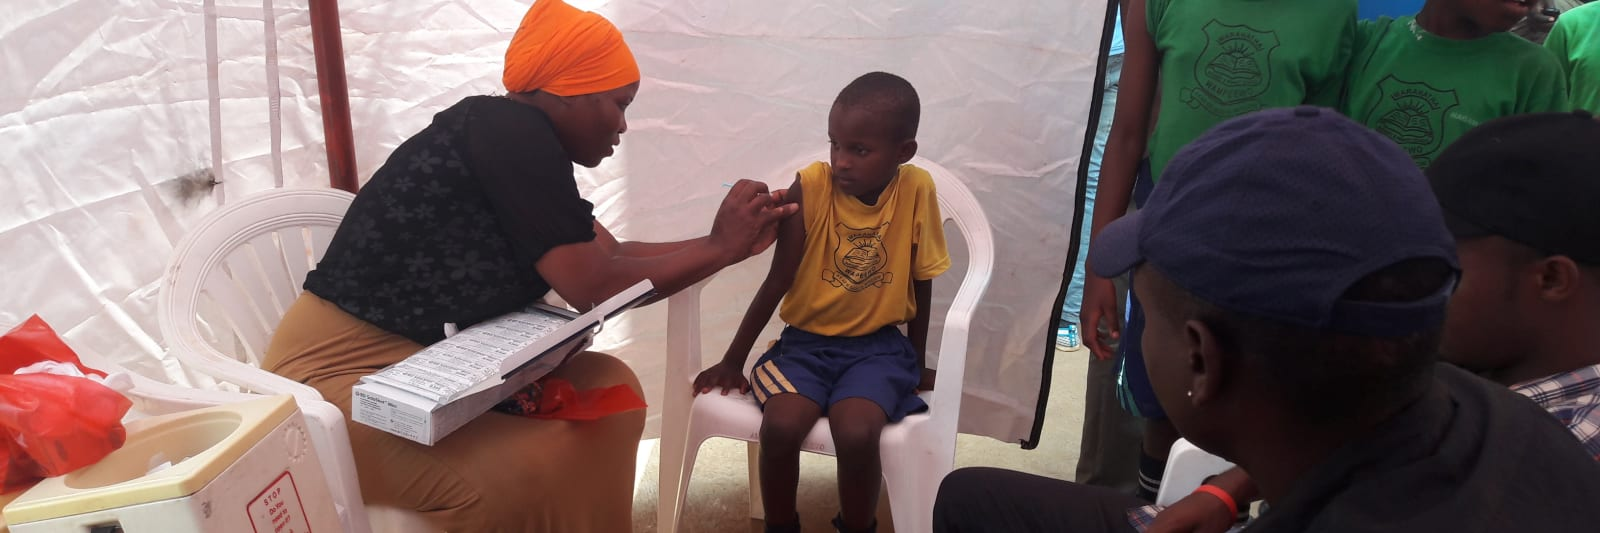 Essential Health Pack enables medical staff to continue providing services in Uganda